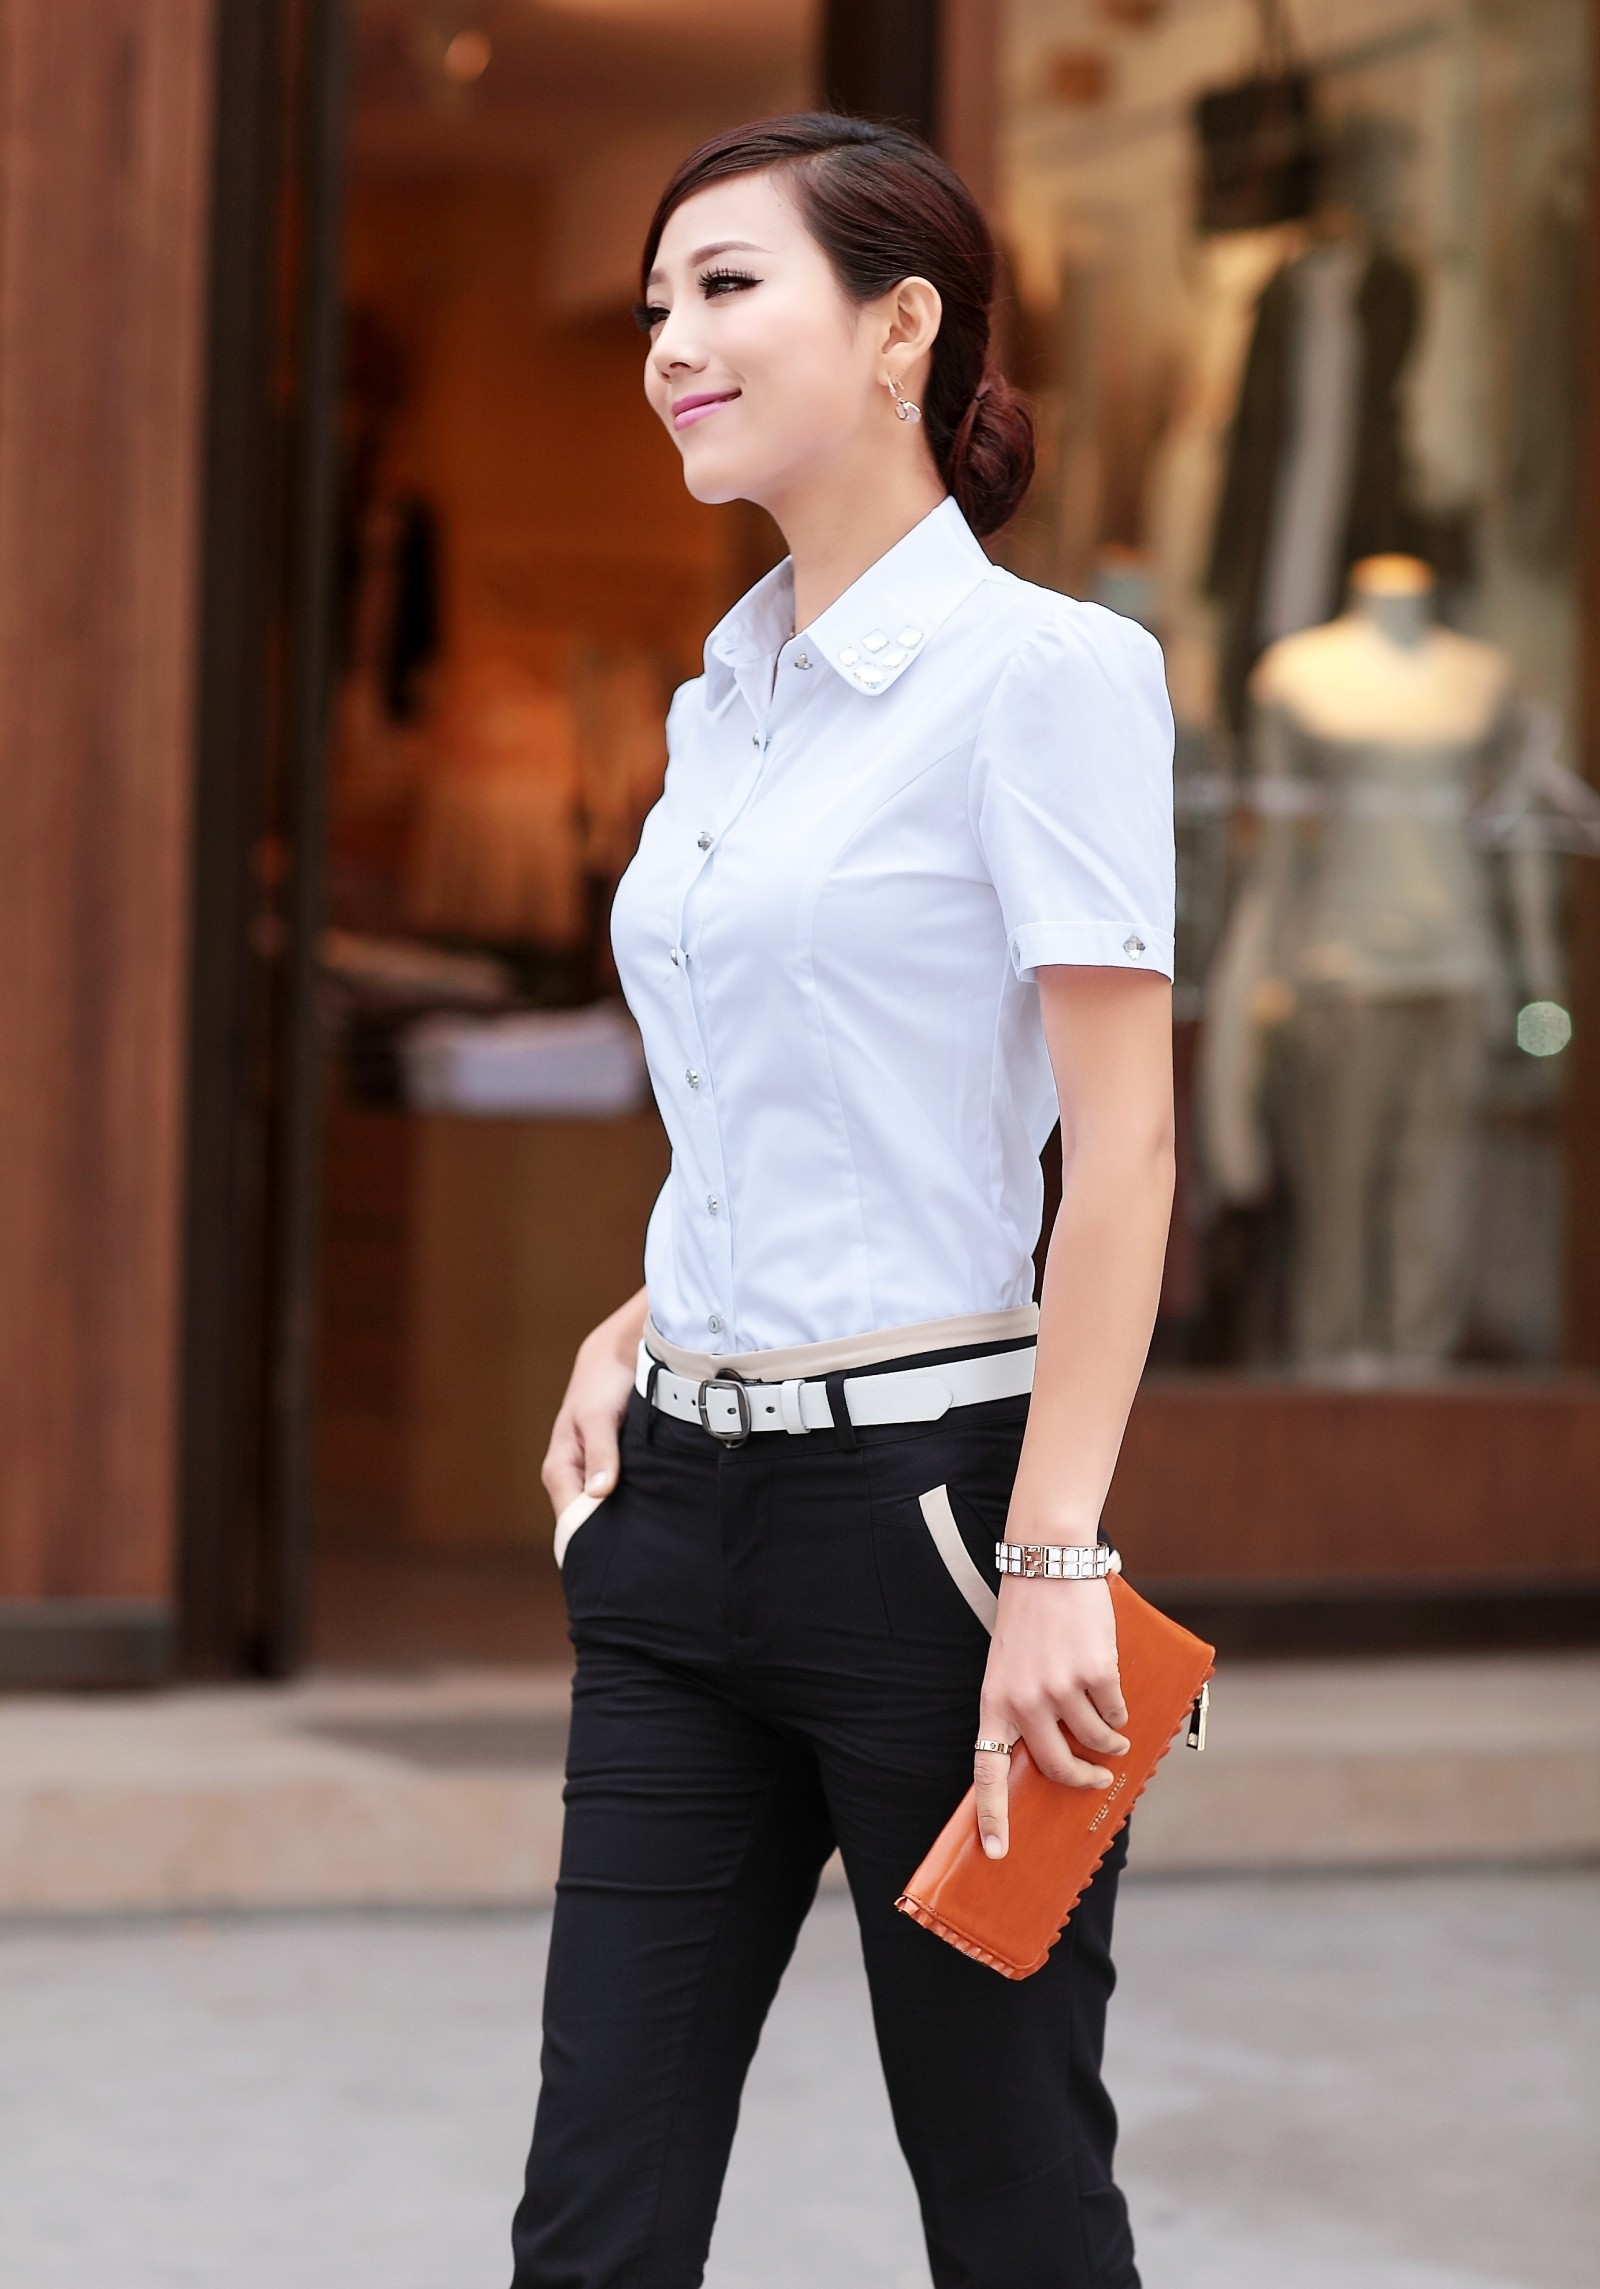 Summer wear new cultivate one's morality shirt female lapel set auger cool OL cotton shirts with short sleeves Taobao Agent